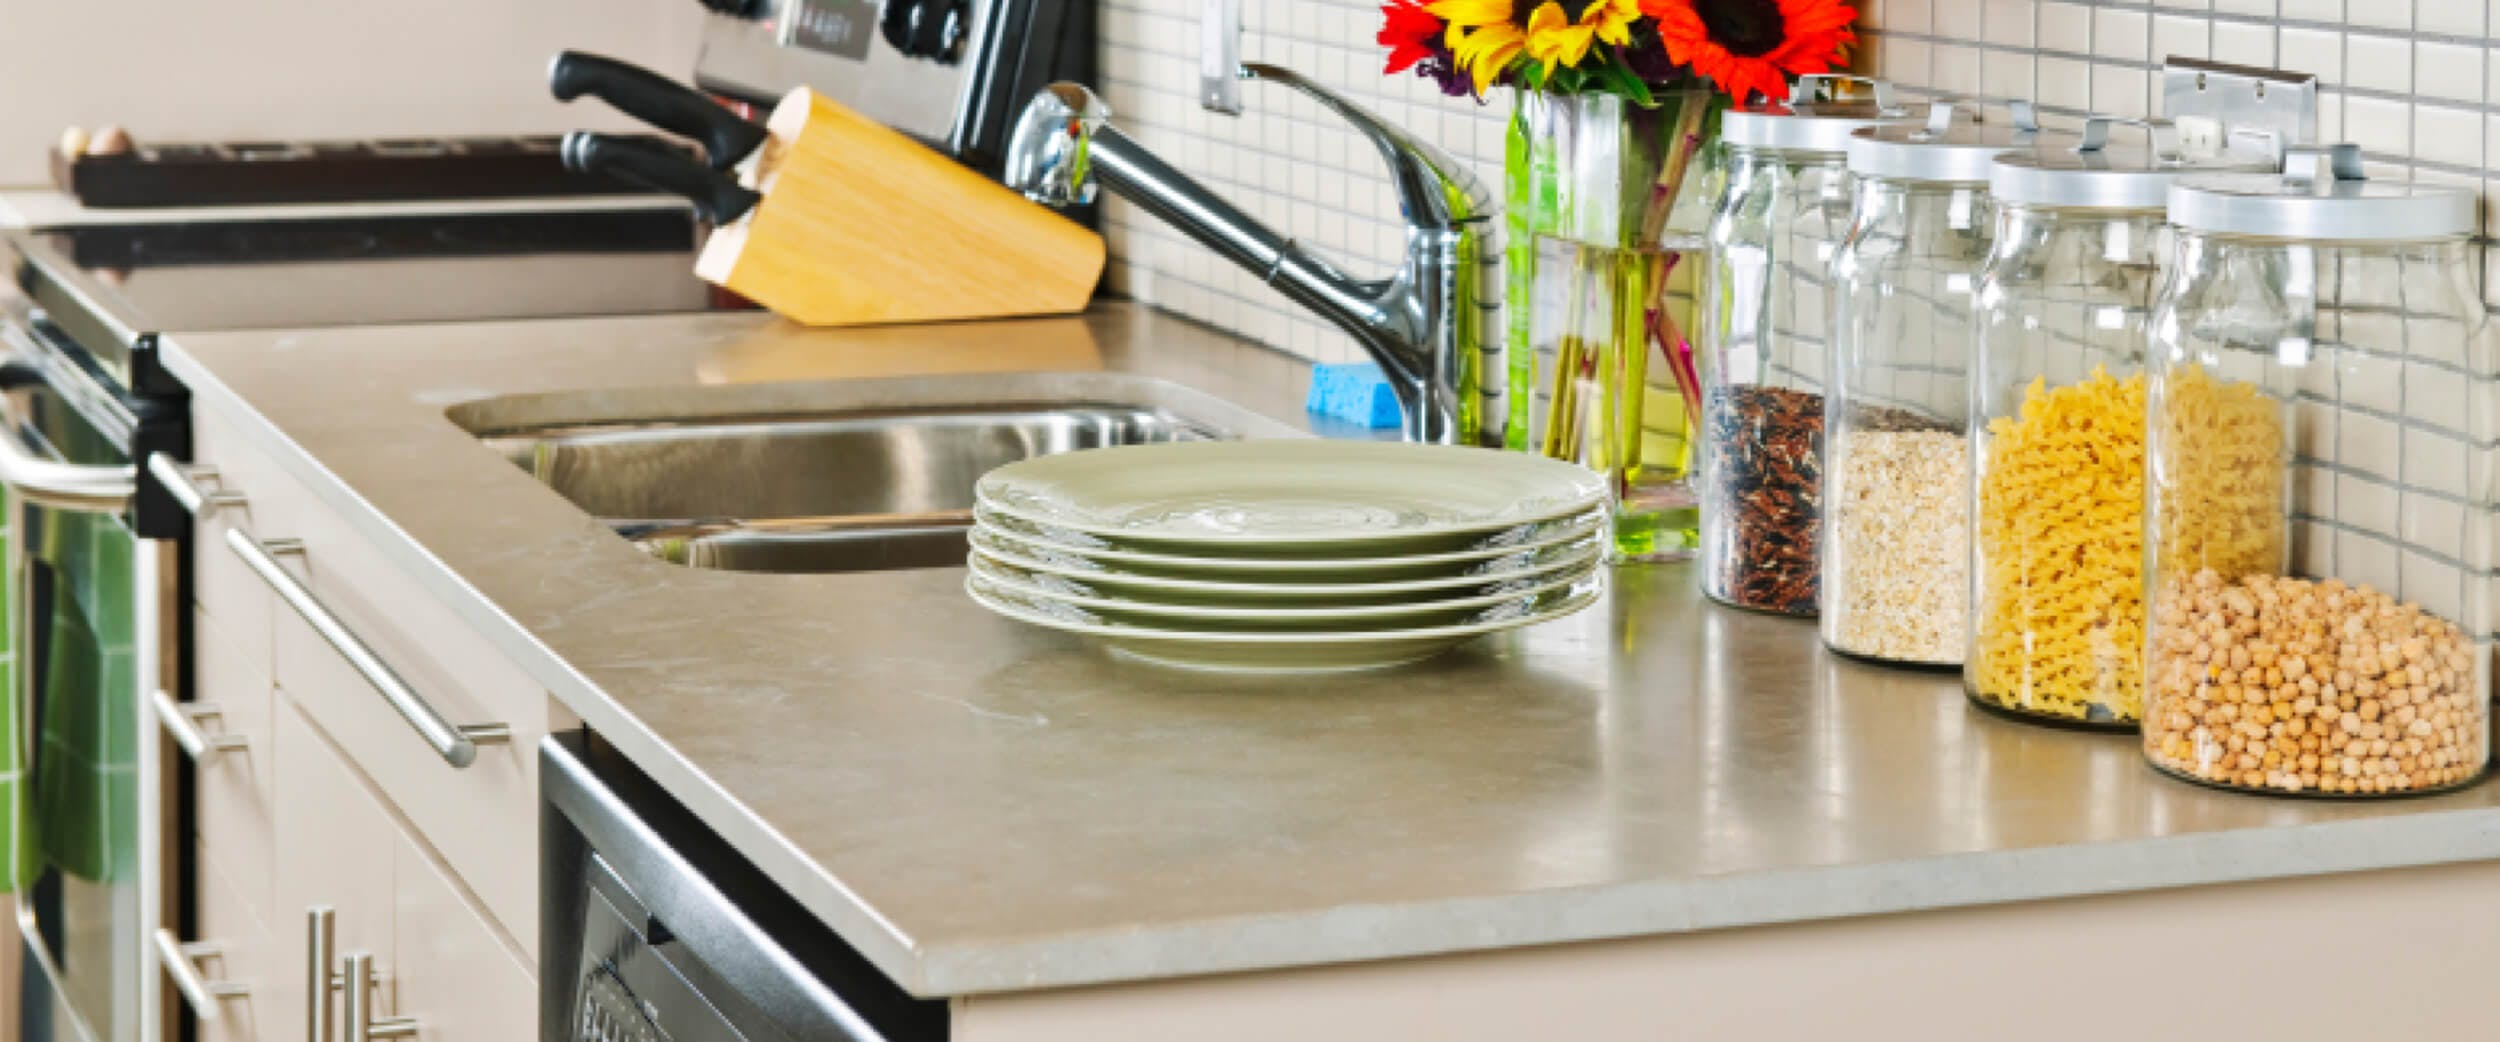 Pros And Cons Of Laminate Countertops In A Kitchen